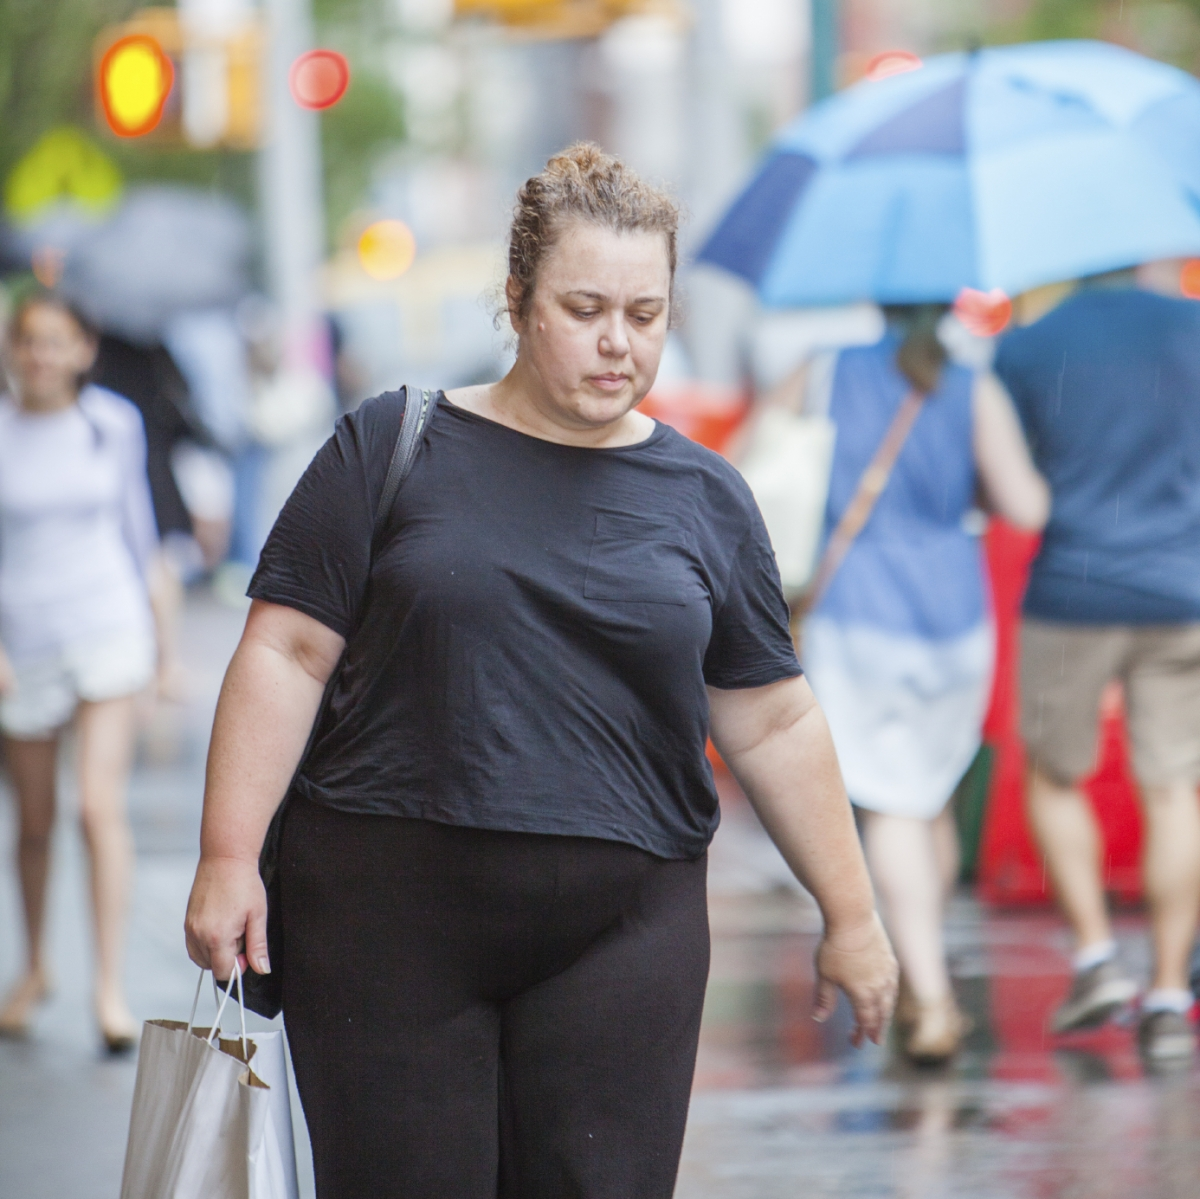 Obese woman outdoor